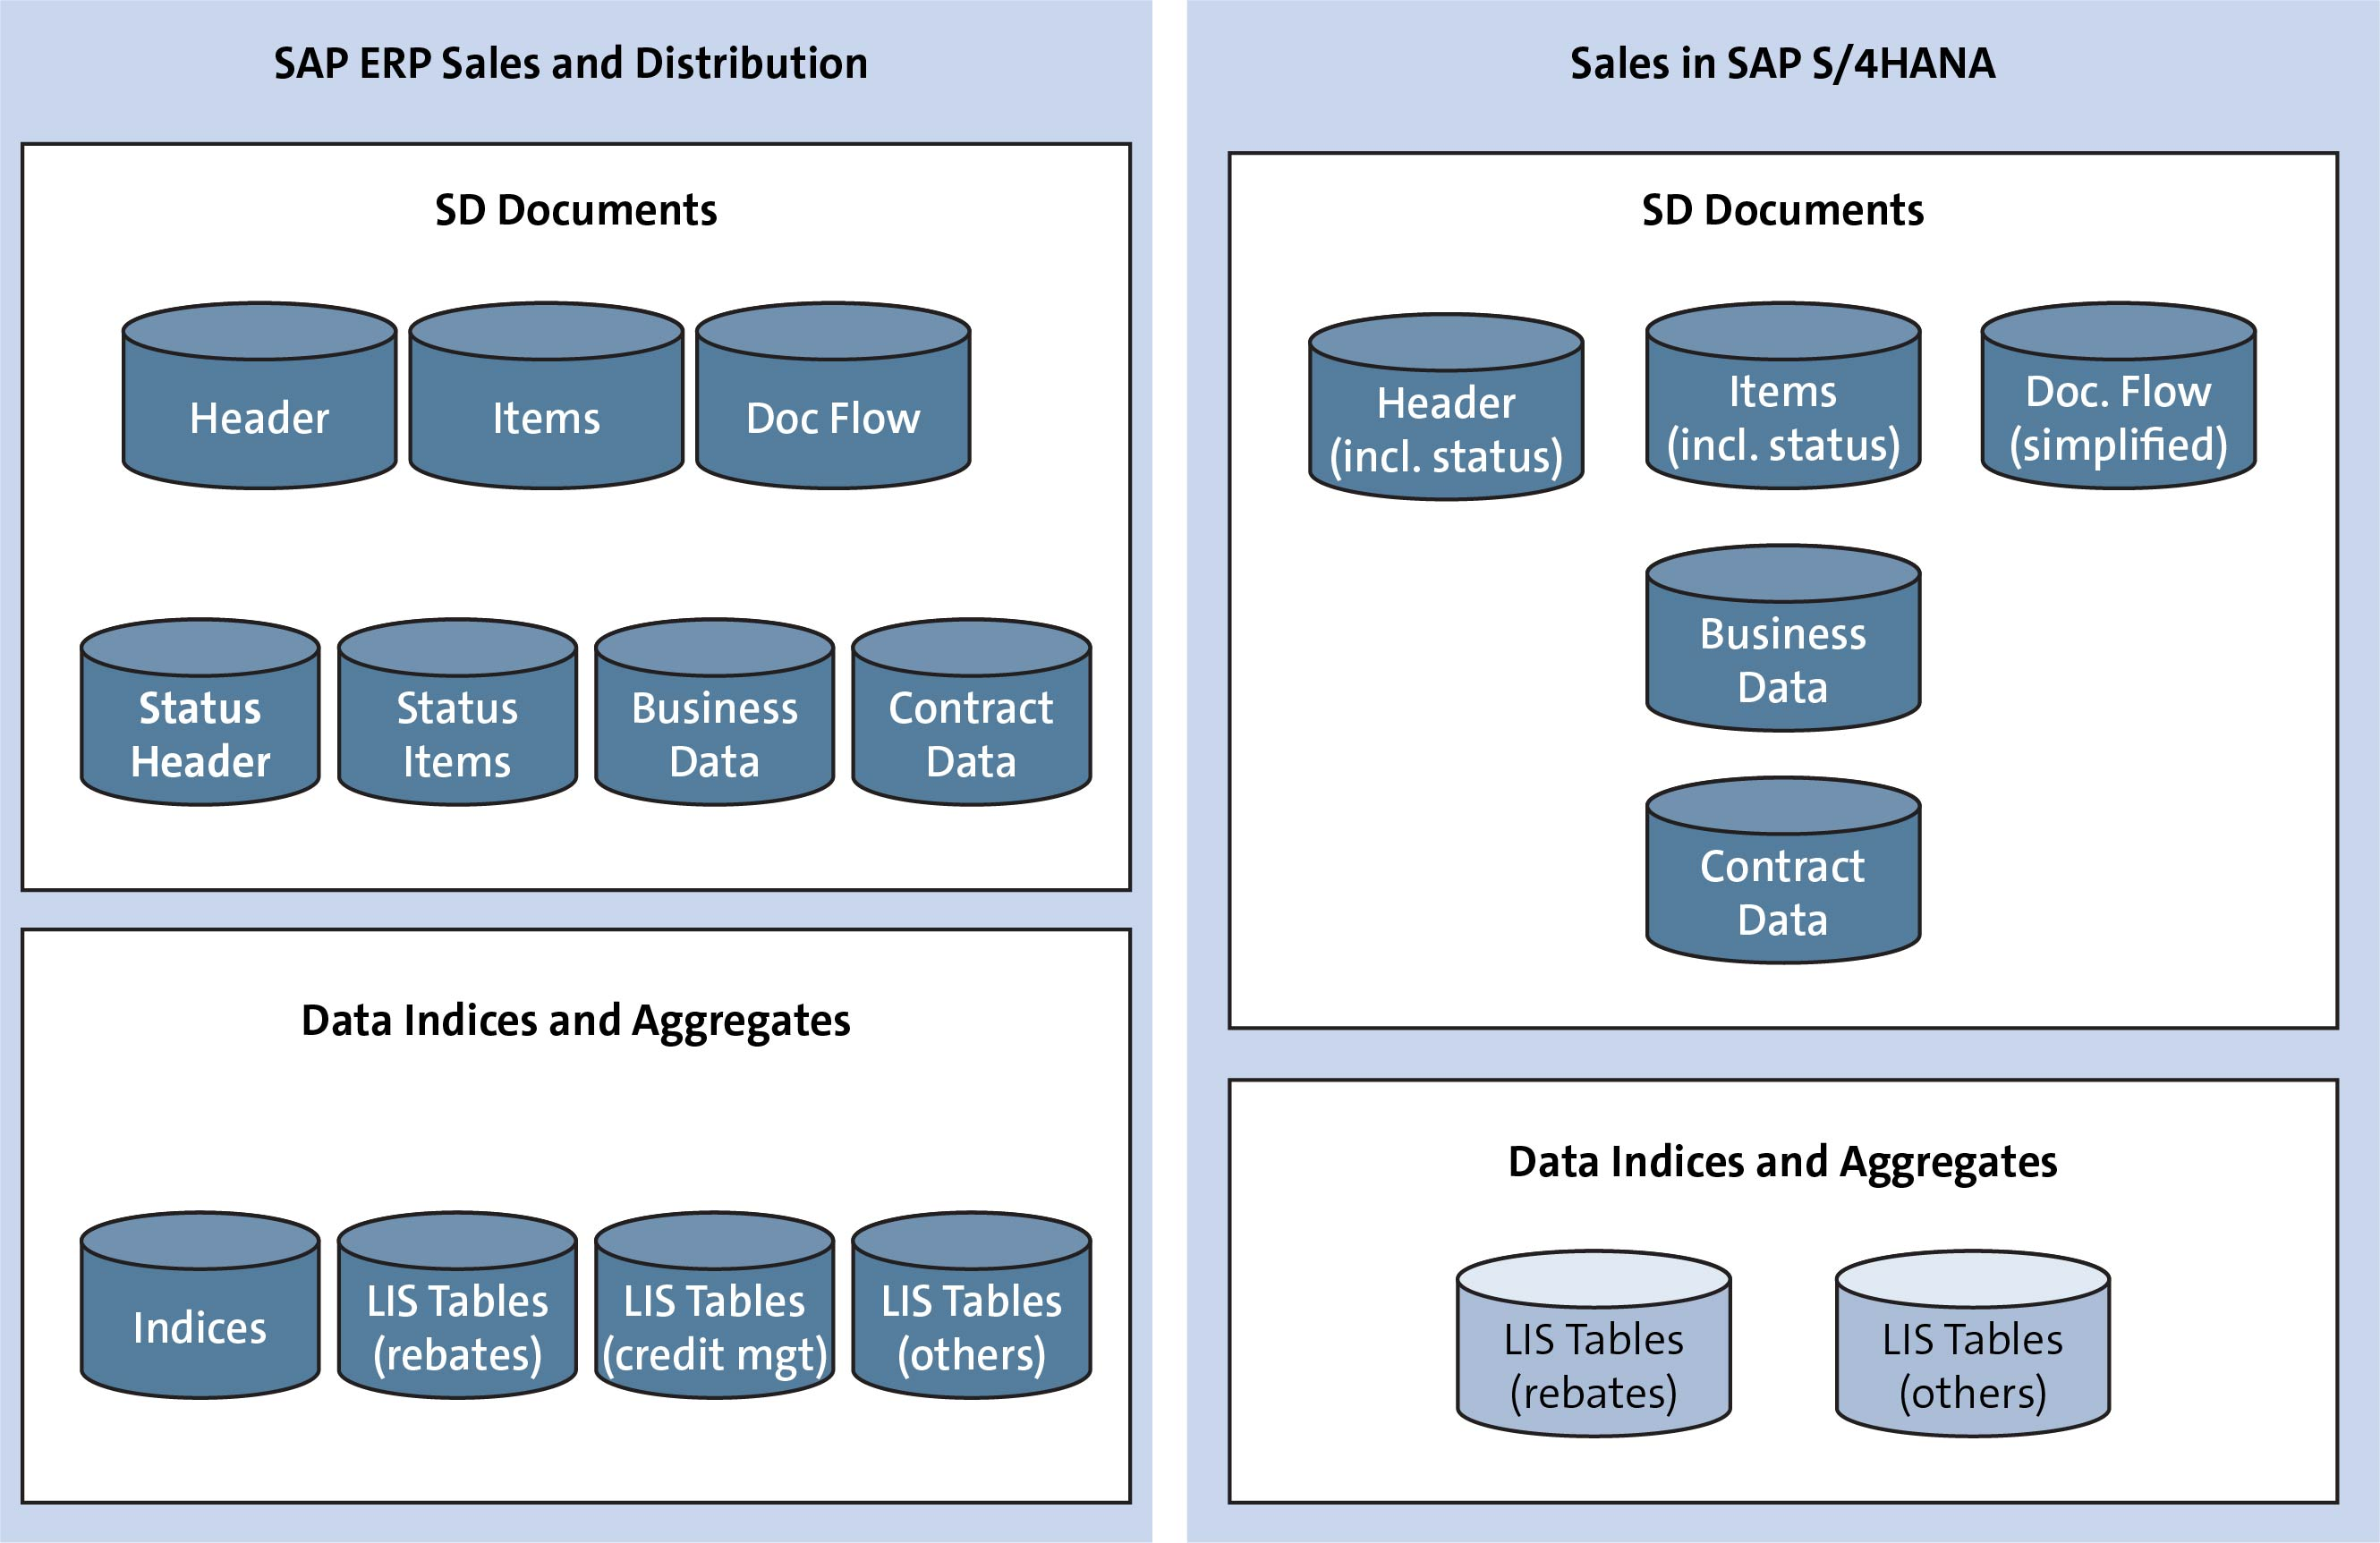 SAP S/4HANA Sales Simplifications